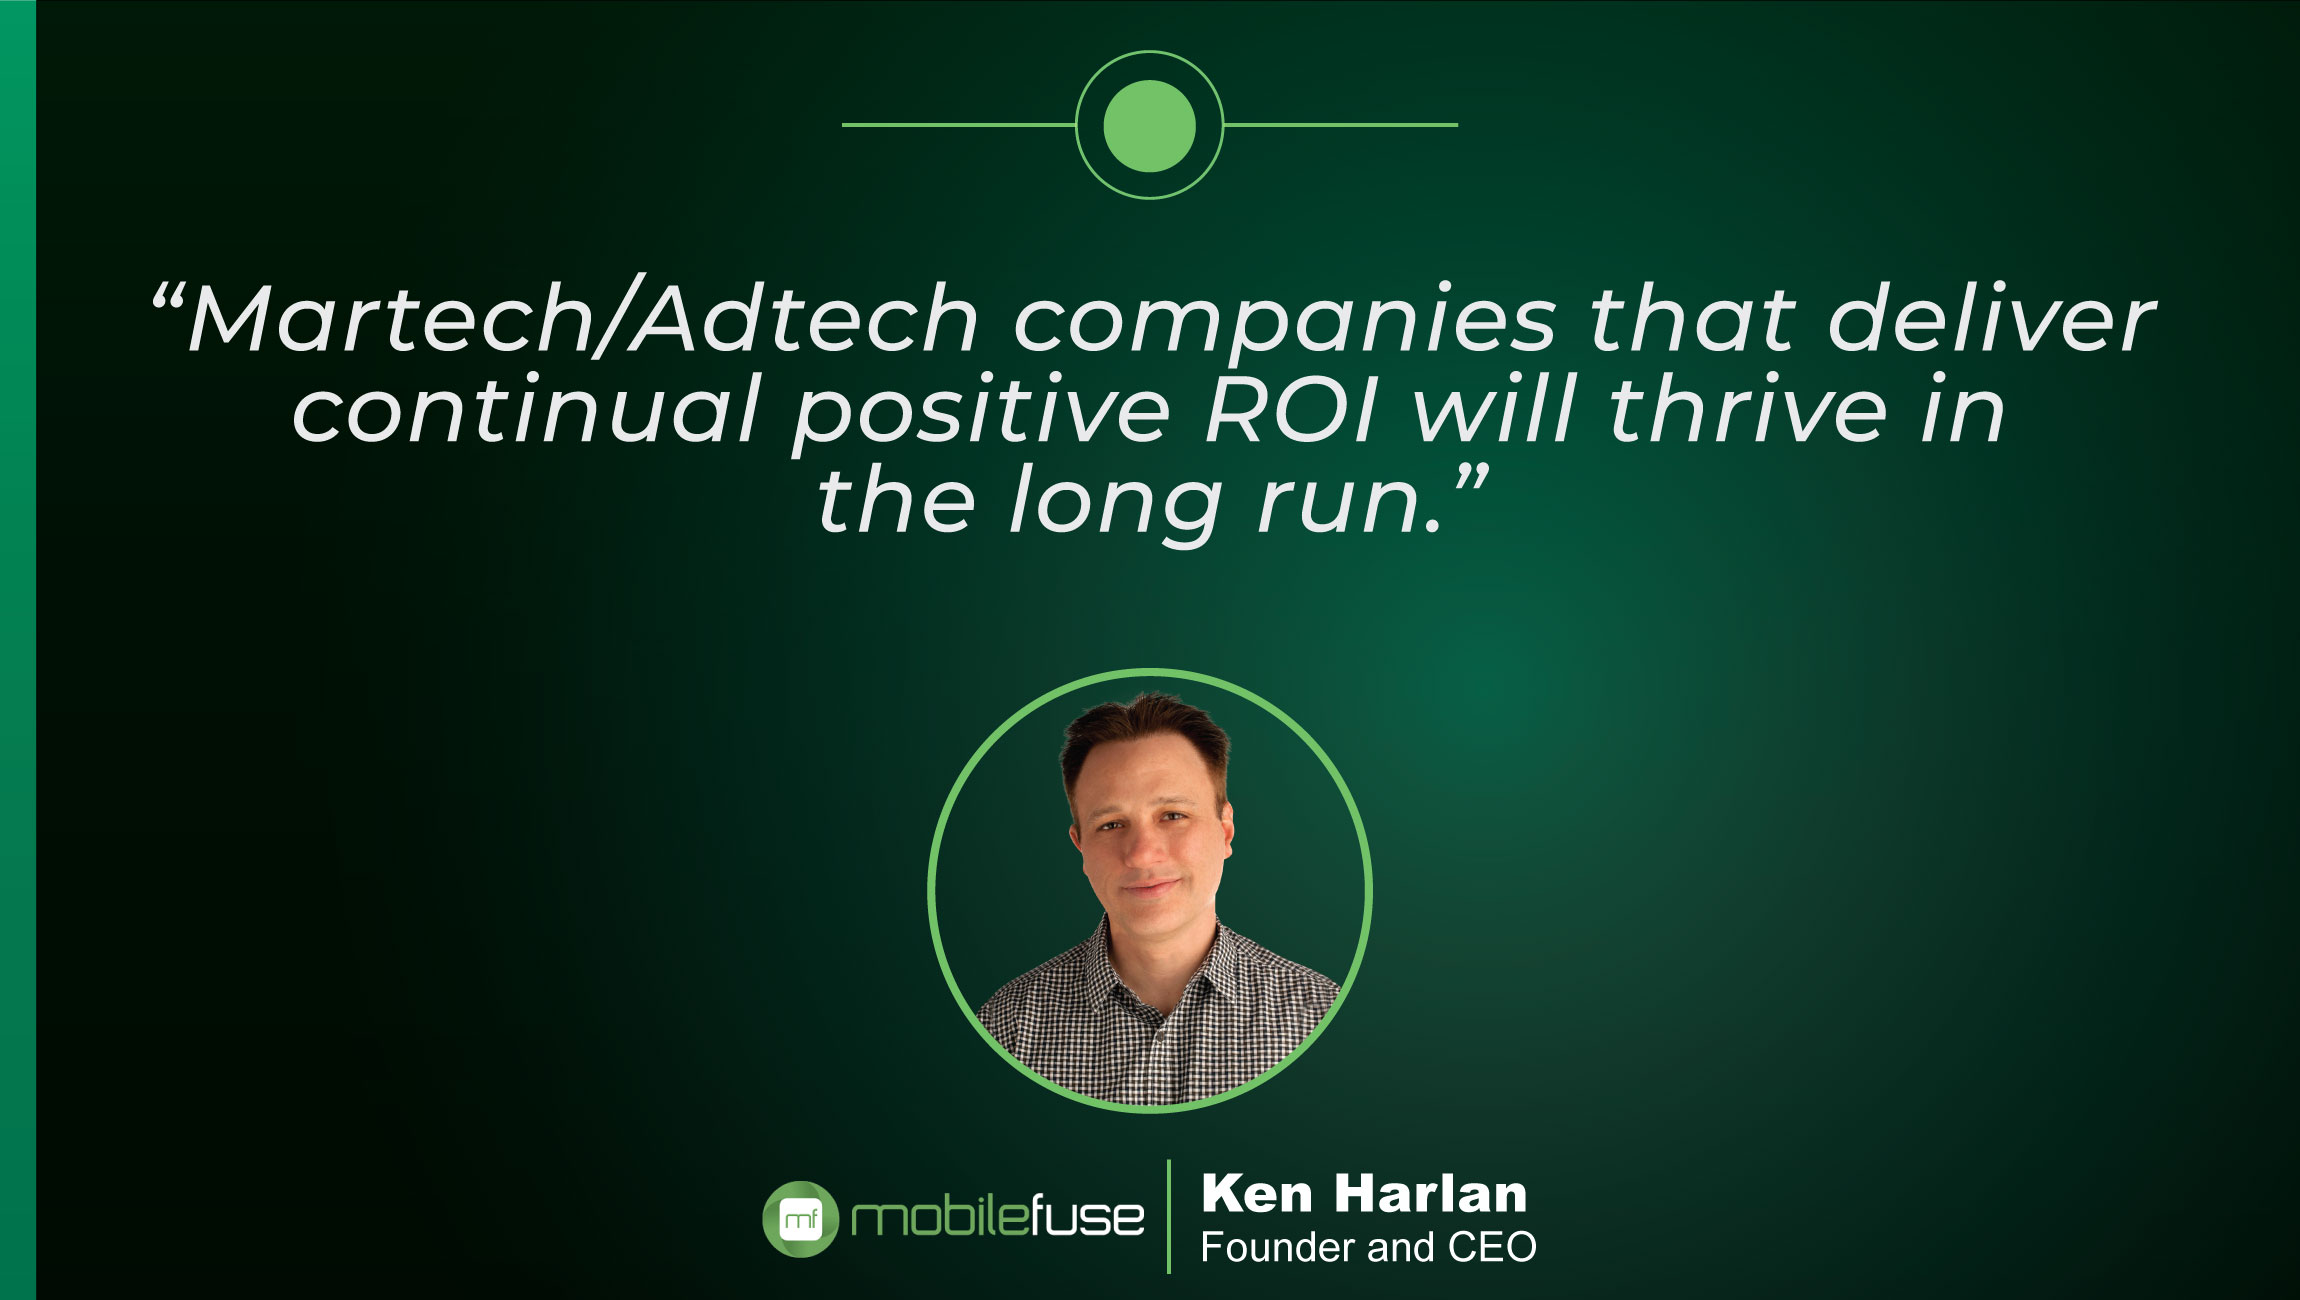 TechBytes with Ken Harlan, Founder and CEO at MobileFuse